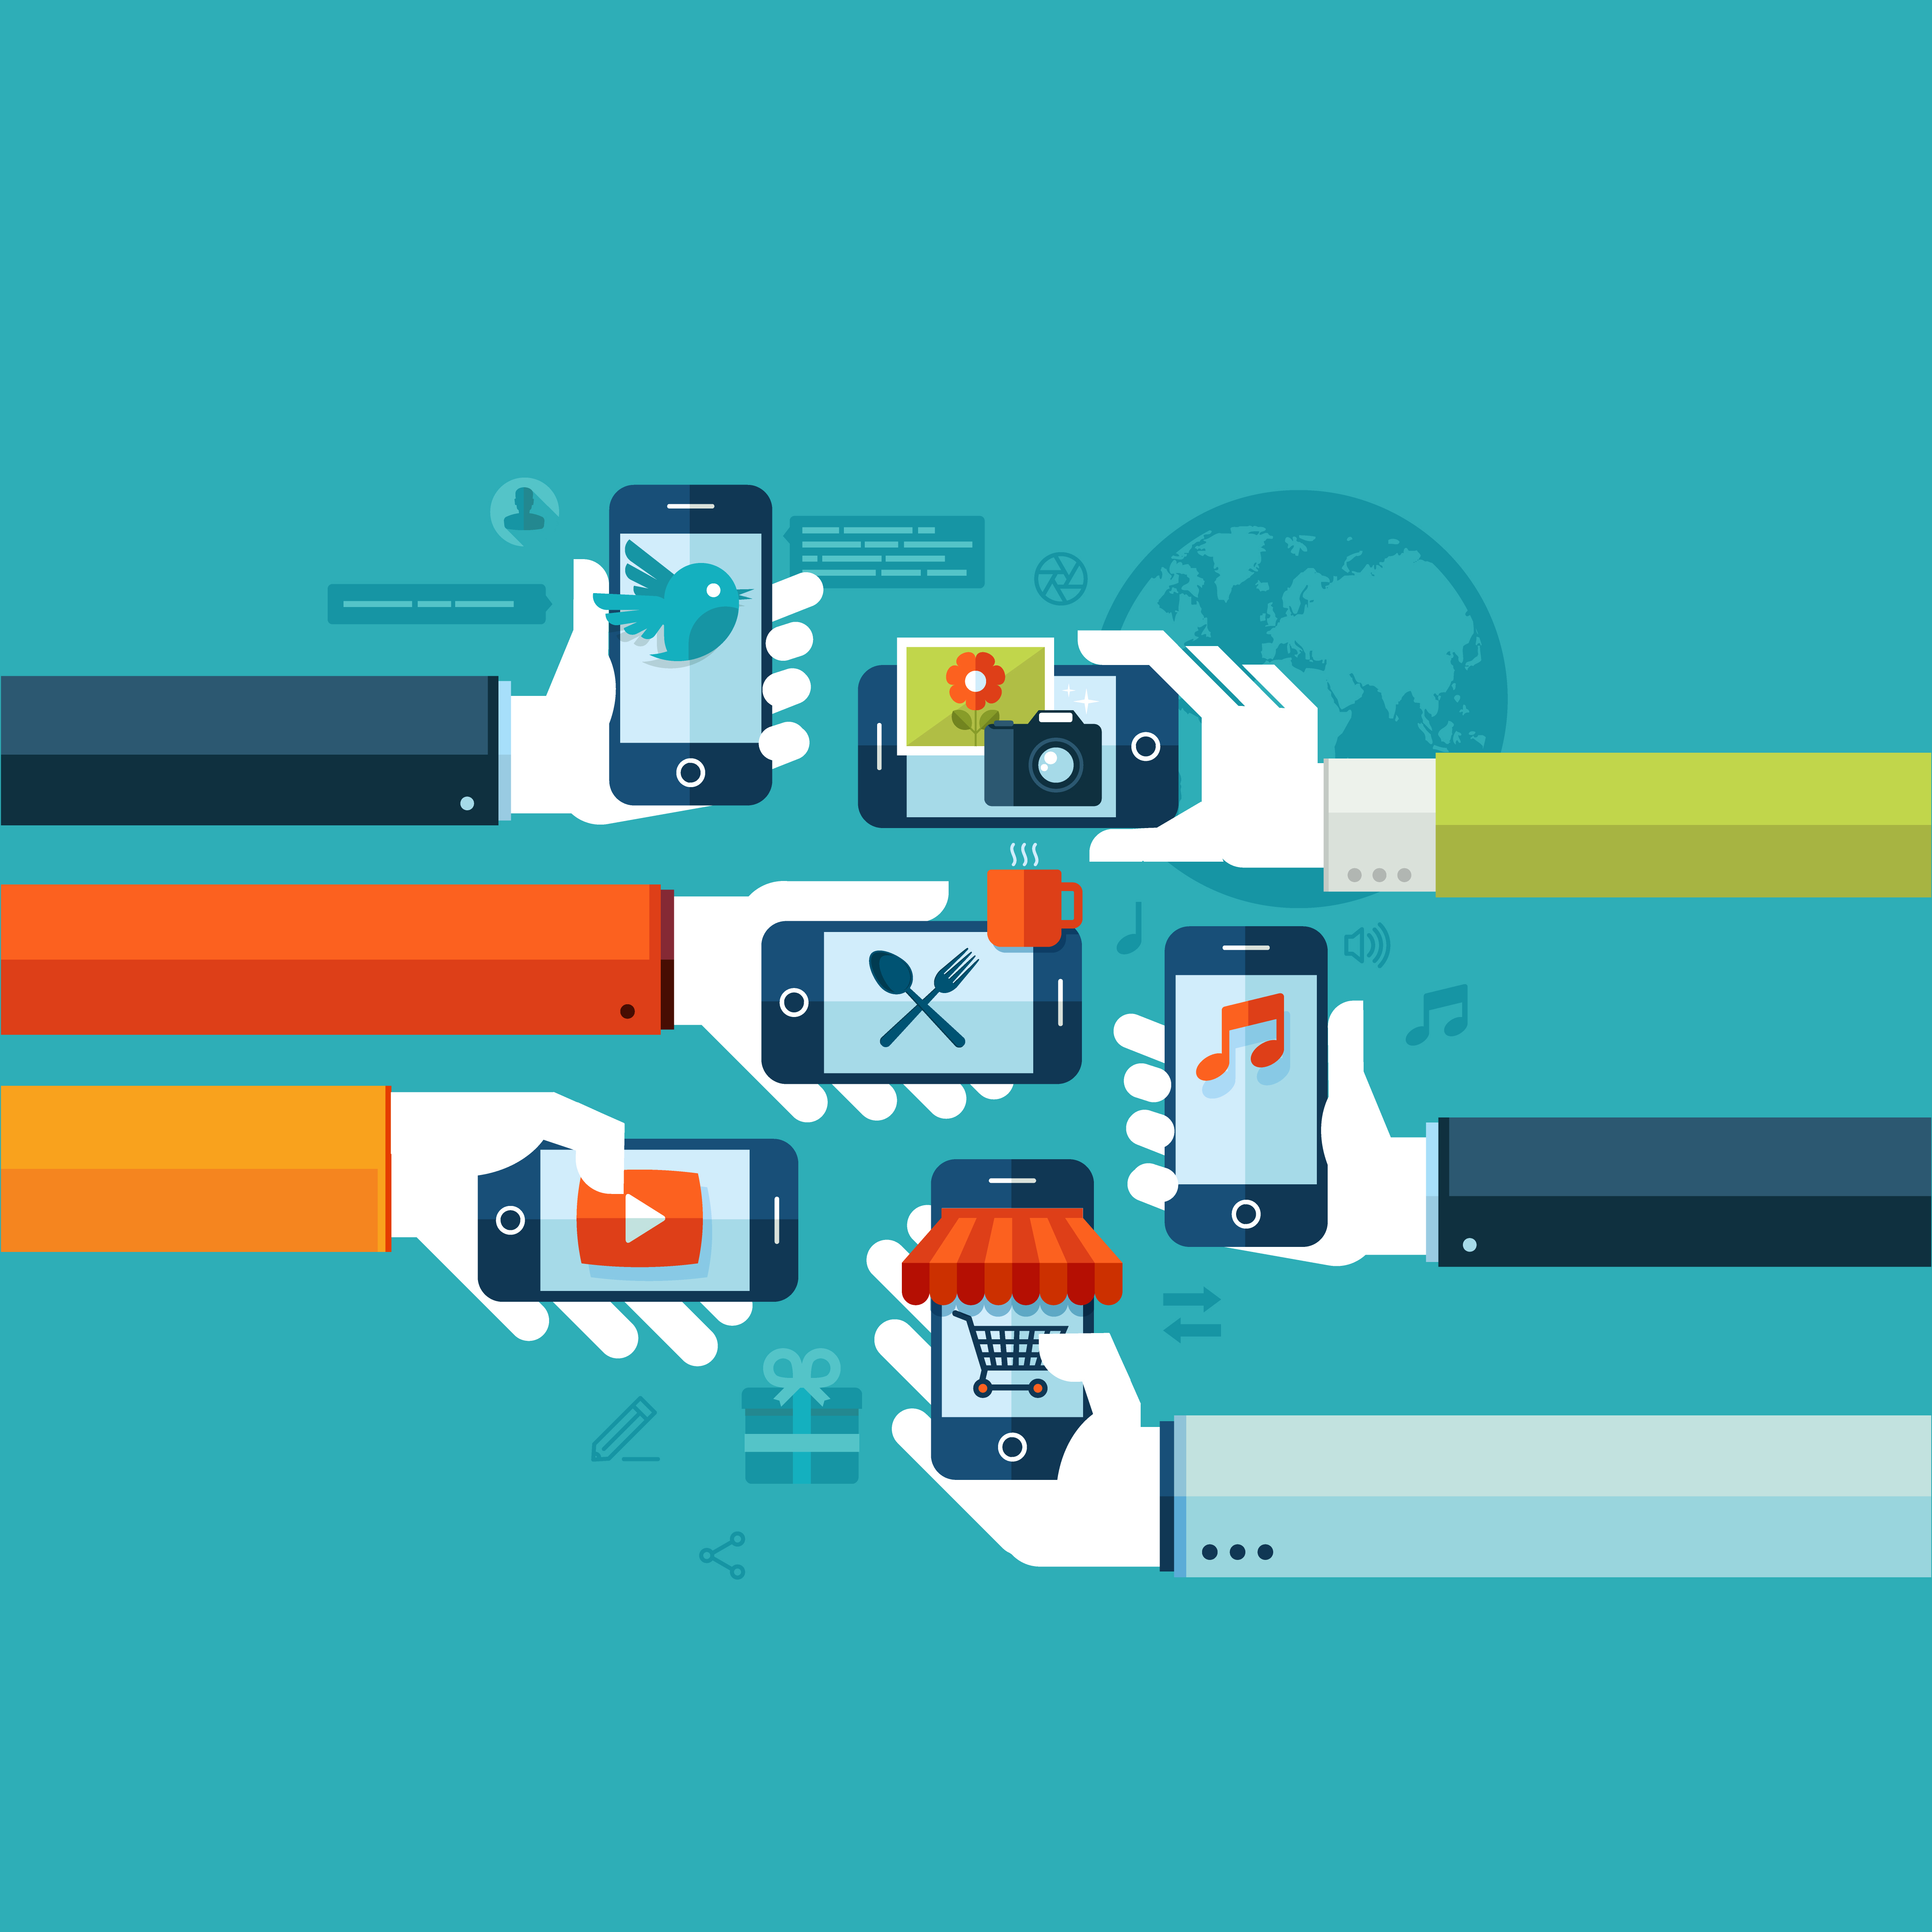 Smartphones Dominate – What Does This Mean for Your Business?